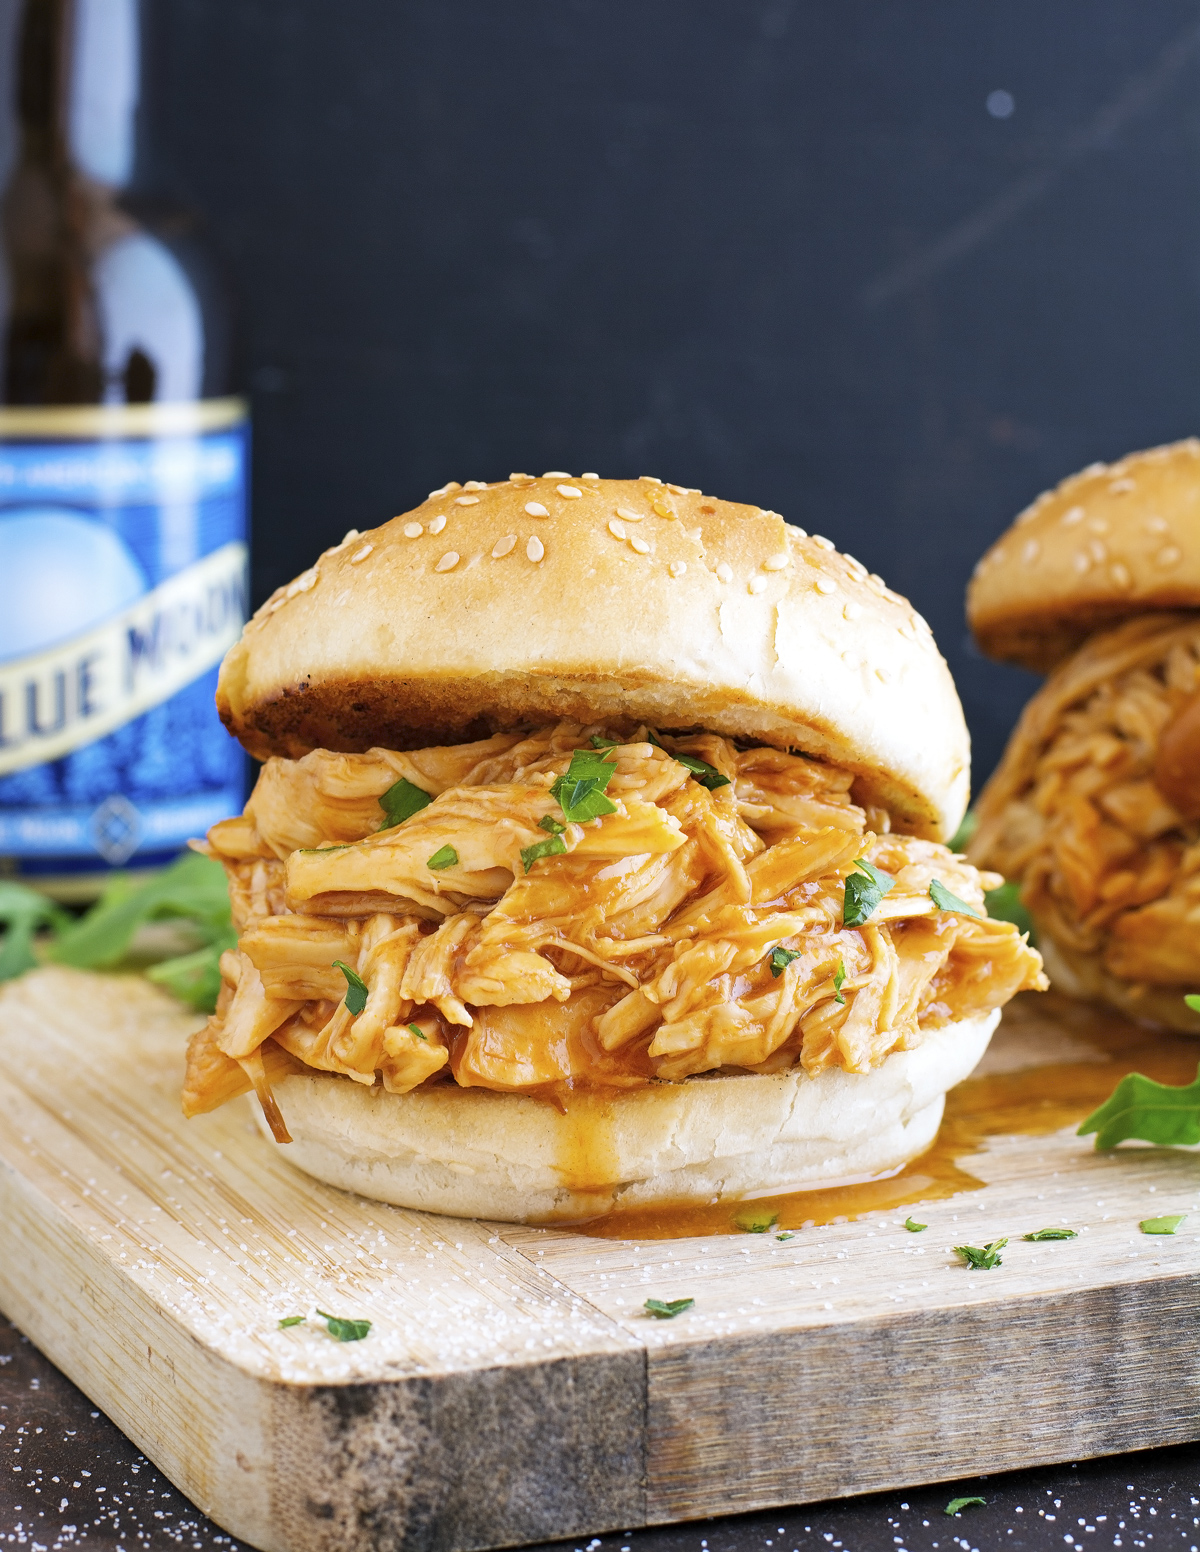 Jan 26, · 10 Ways to Use Crock Pot BBQ Chicken. Pile it on a bun to make BBQ chicken sandwiches. Toss it over a salad (it's perfect for this BBQ Chicken Salad). Stuff it inside a tortilla to make BBQ-style slow cooker pulled chicken tacos. Same but different: Stuff between TWO tortillas, fill with cheese, and make BBQ chicken quesadillas.5/5(2).